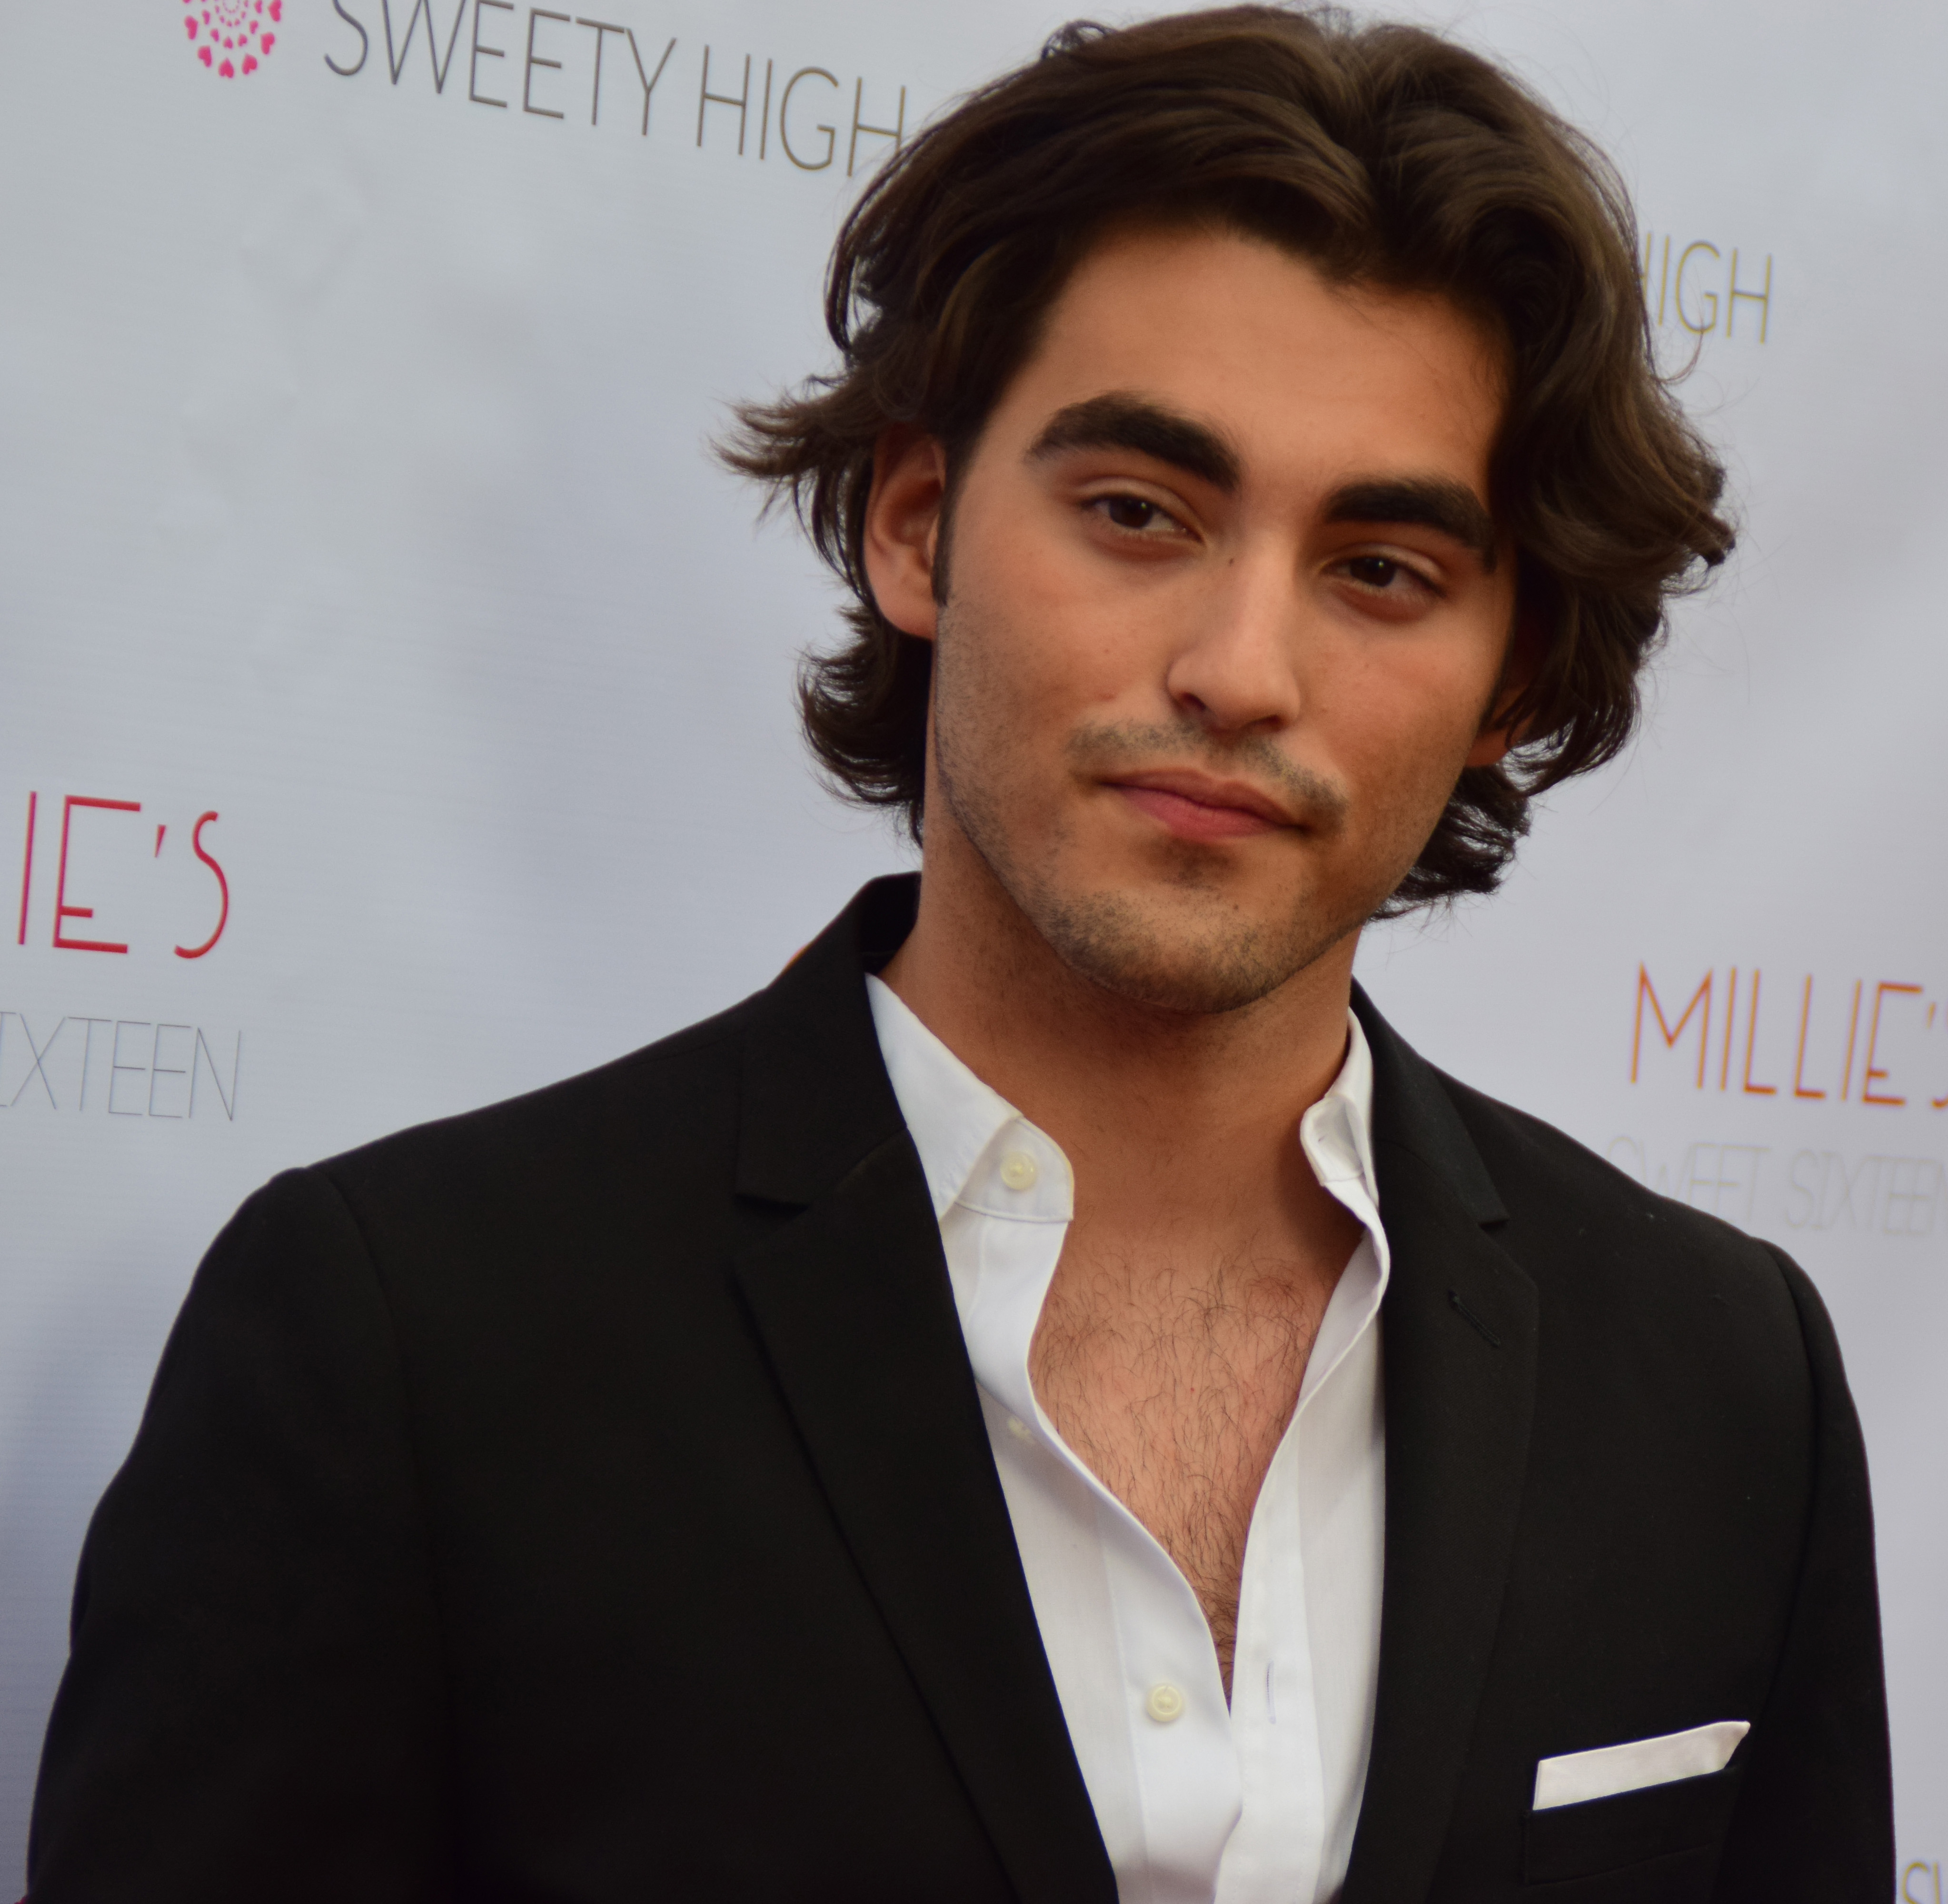 The 23-year old son of father (?) and mother(?) Blake Michael in 2020 photo. Blake Michael earned a million dollar salary - leaving the net worth at 1 million in 2020